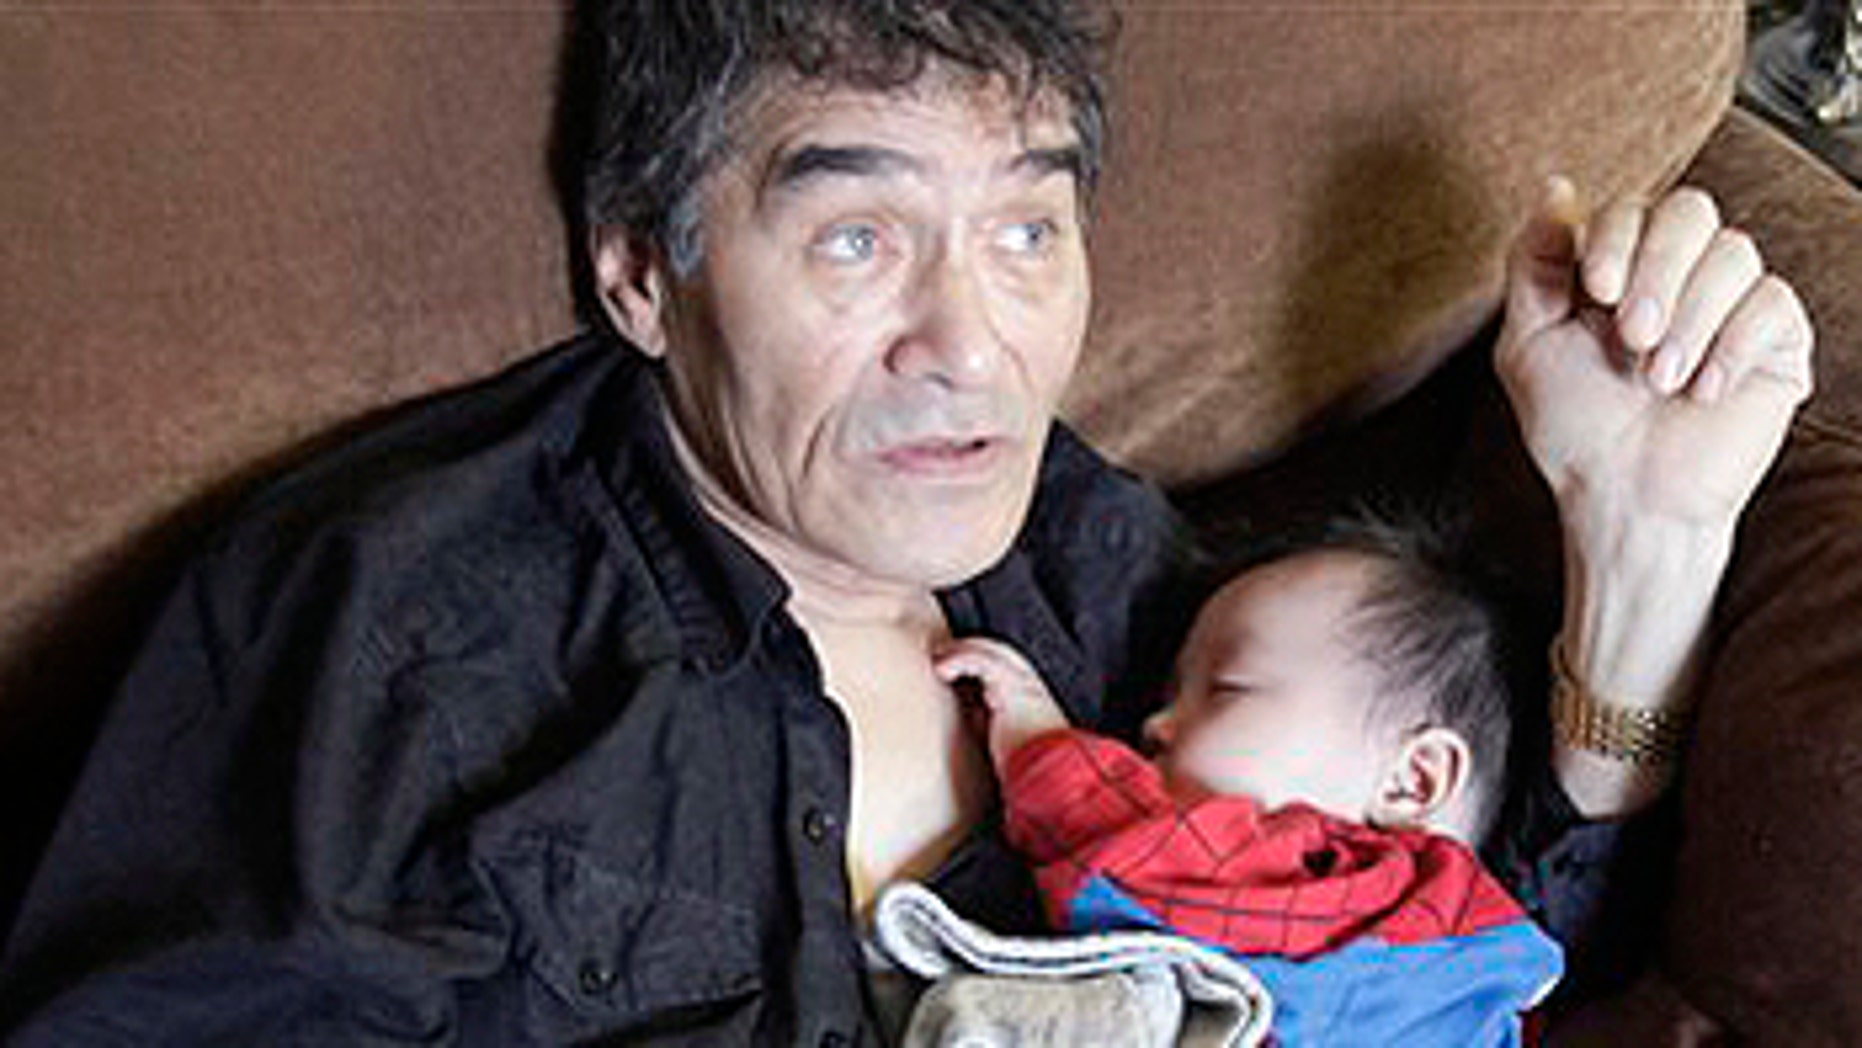 """In this Aug. 8, 2009 photo, Henry Nasogaluak Jr. sleeps in the arms of his father Henry Nasogaluak in Tuktoyaktuk, in the Northwest Territories, Canada. Henry Jr. slept in his father's arms as the hunter pondered the future of the boy born last Arctic winter, in the depths of a polar bear season he'd rather forget. """"It's too late to be a hunter. I don't want him to do that,"""" Henry Nasogaluak said of his son. """"It's a hard life, and it got harder with the ban by the United States."""" (AP Photo/Rick Bowmer)"""